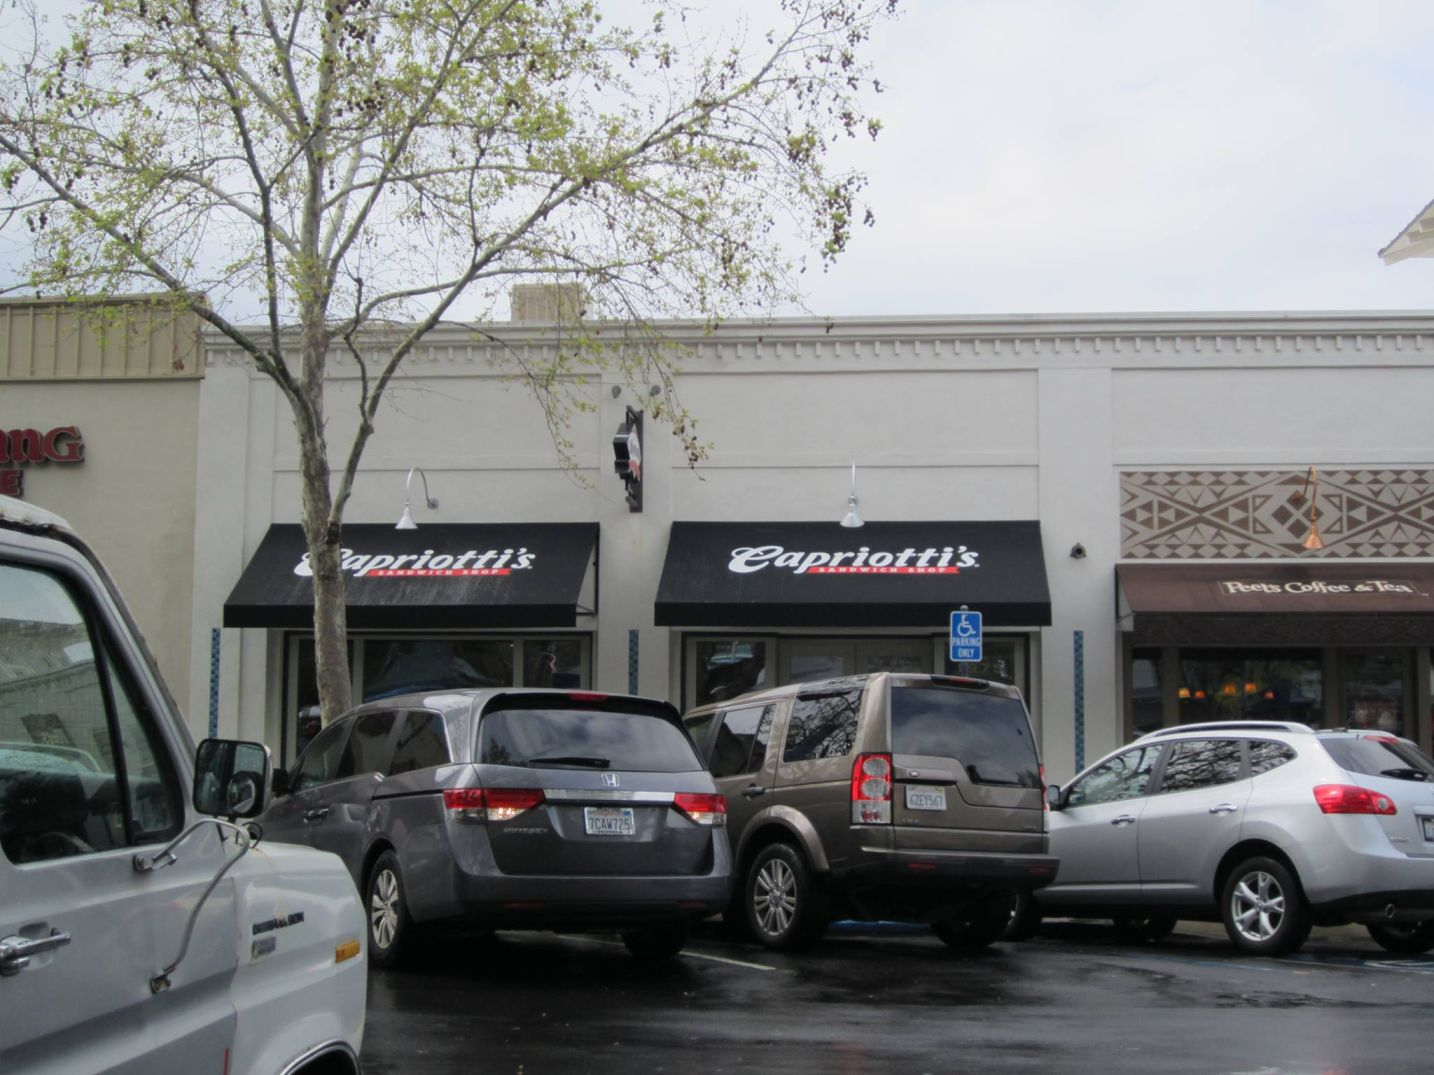 Capriotti's awnings